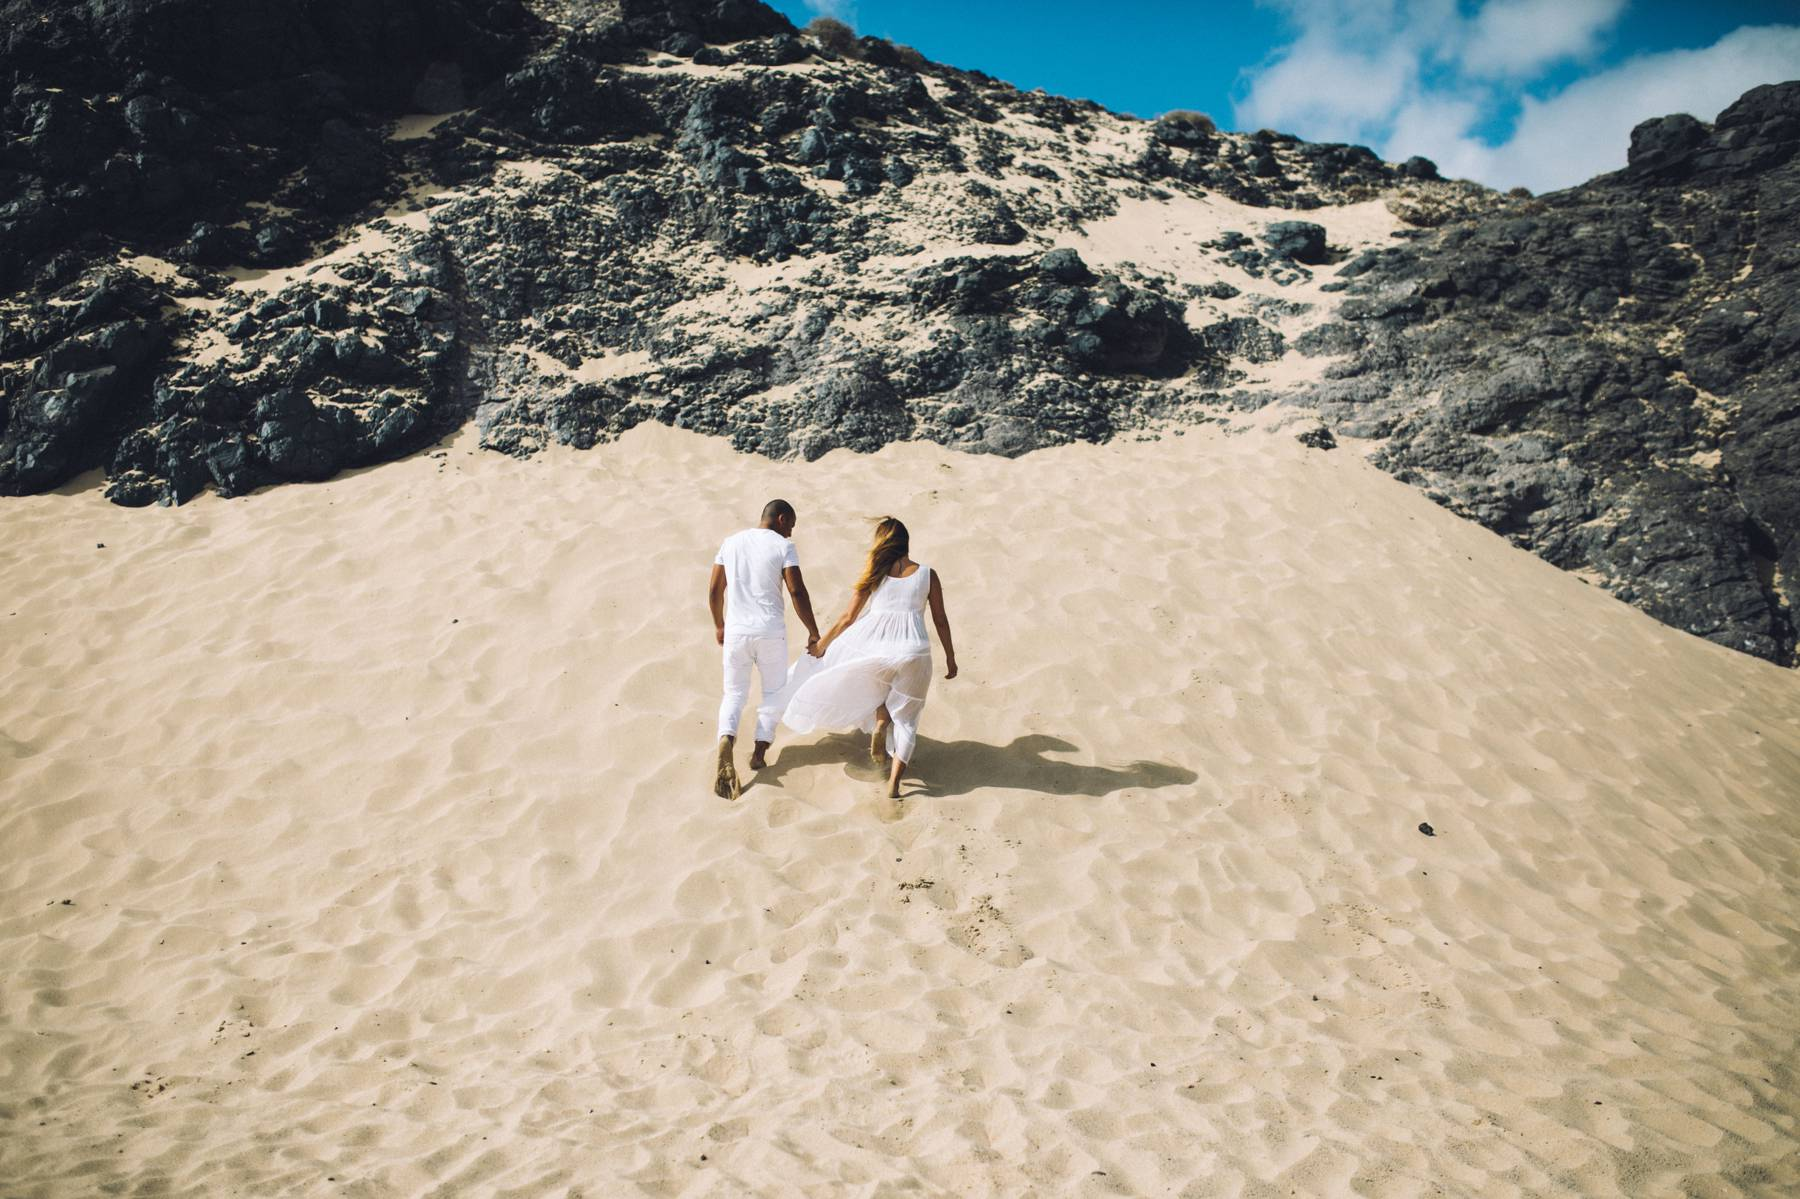 Bride and groom hike on sand dune